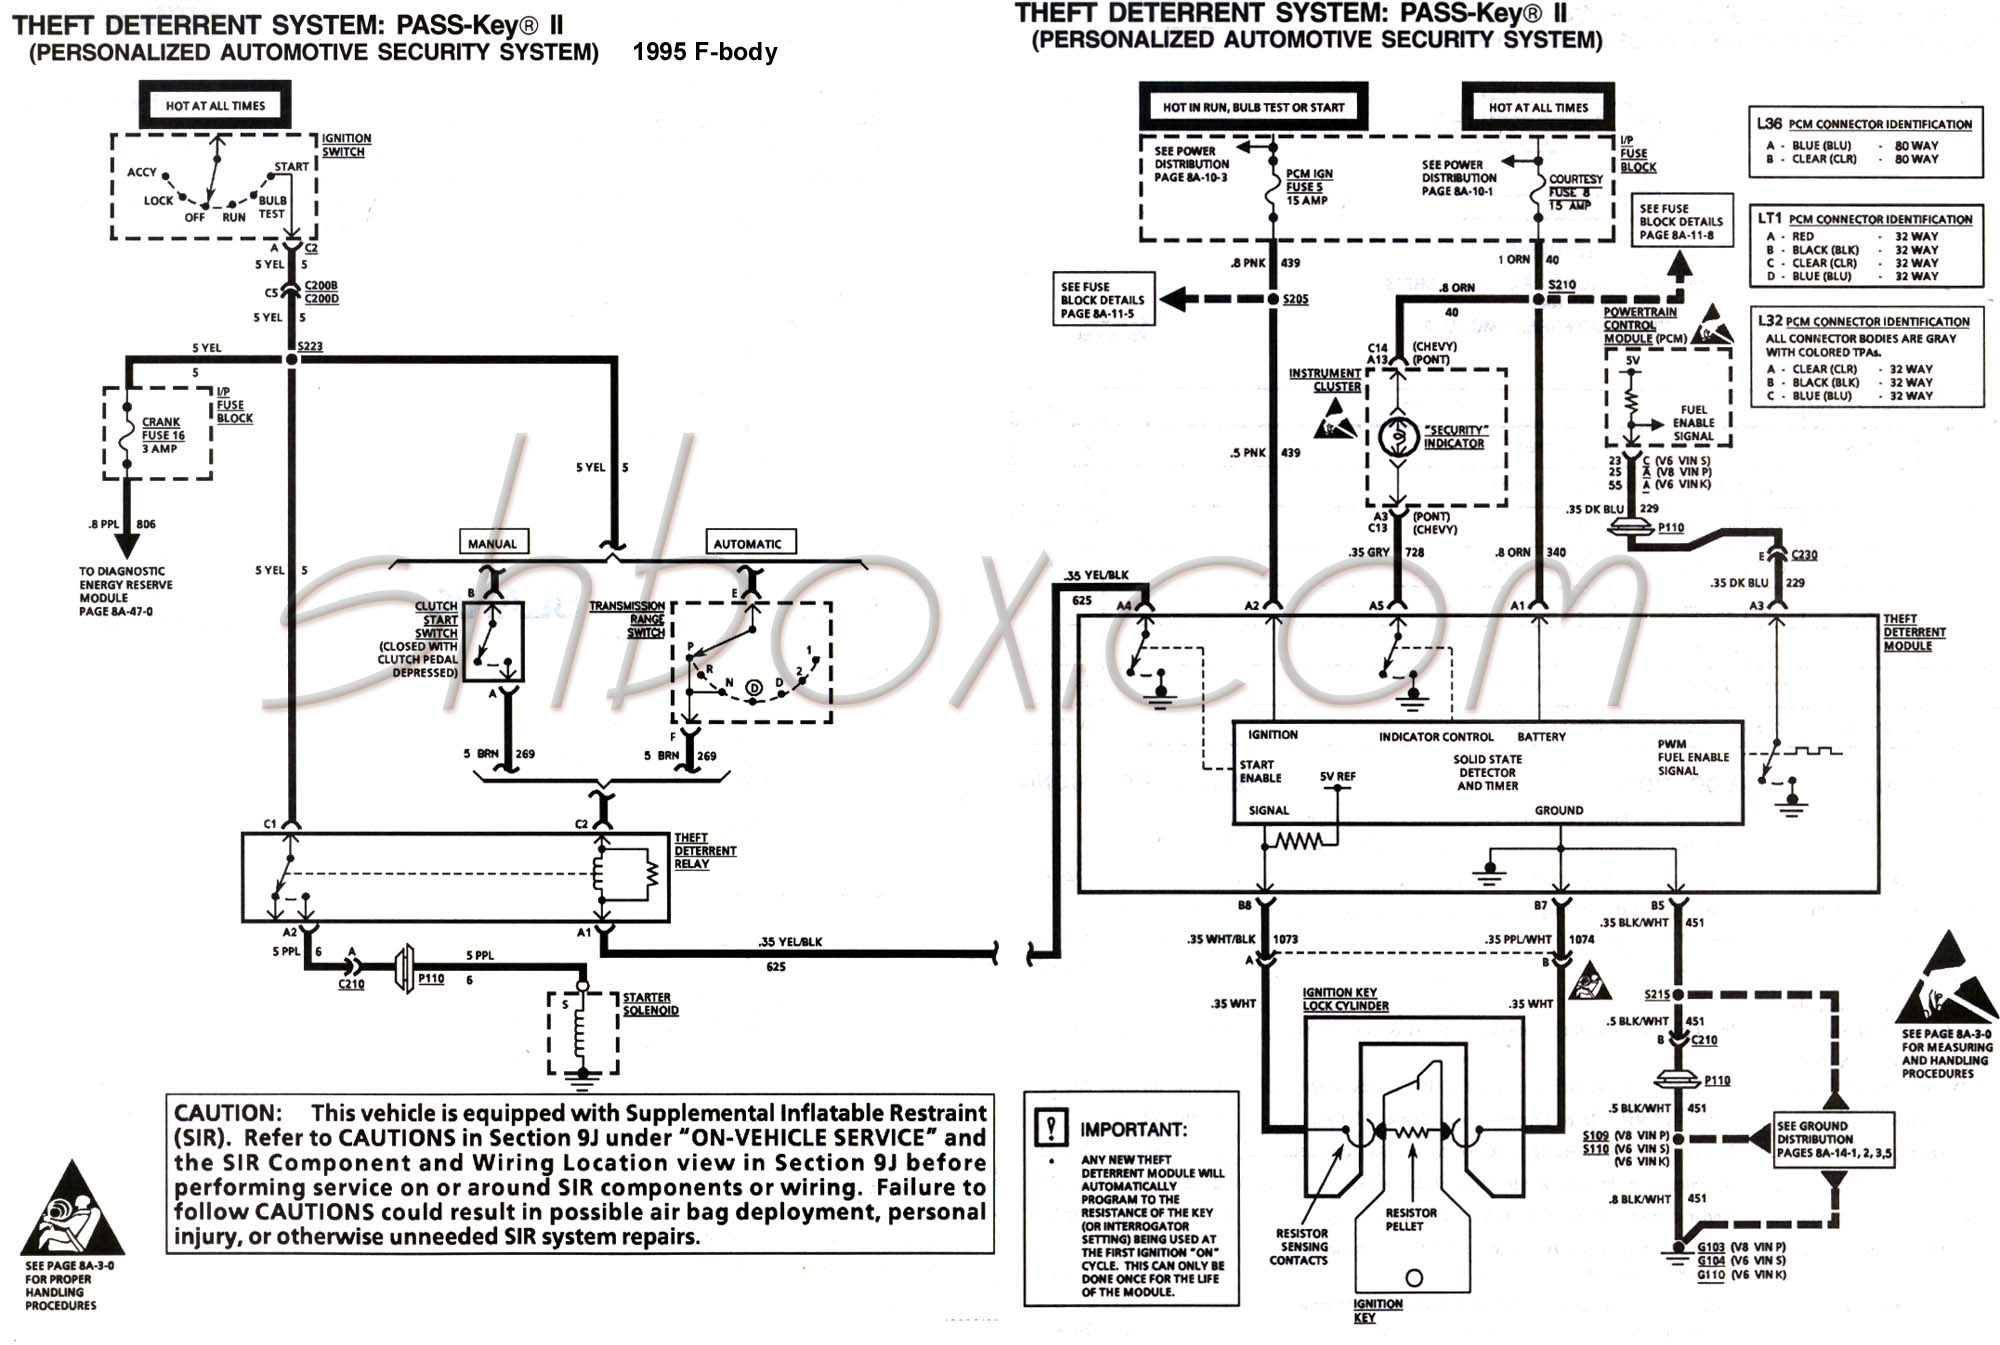 94 Galant Fuse Box Wiring Library 02 Mitsubishi Lancer Horn Diagram 4th Gen Lt1 F Body Tech Aids Rh Shbox Com 95 1993 Corvette